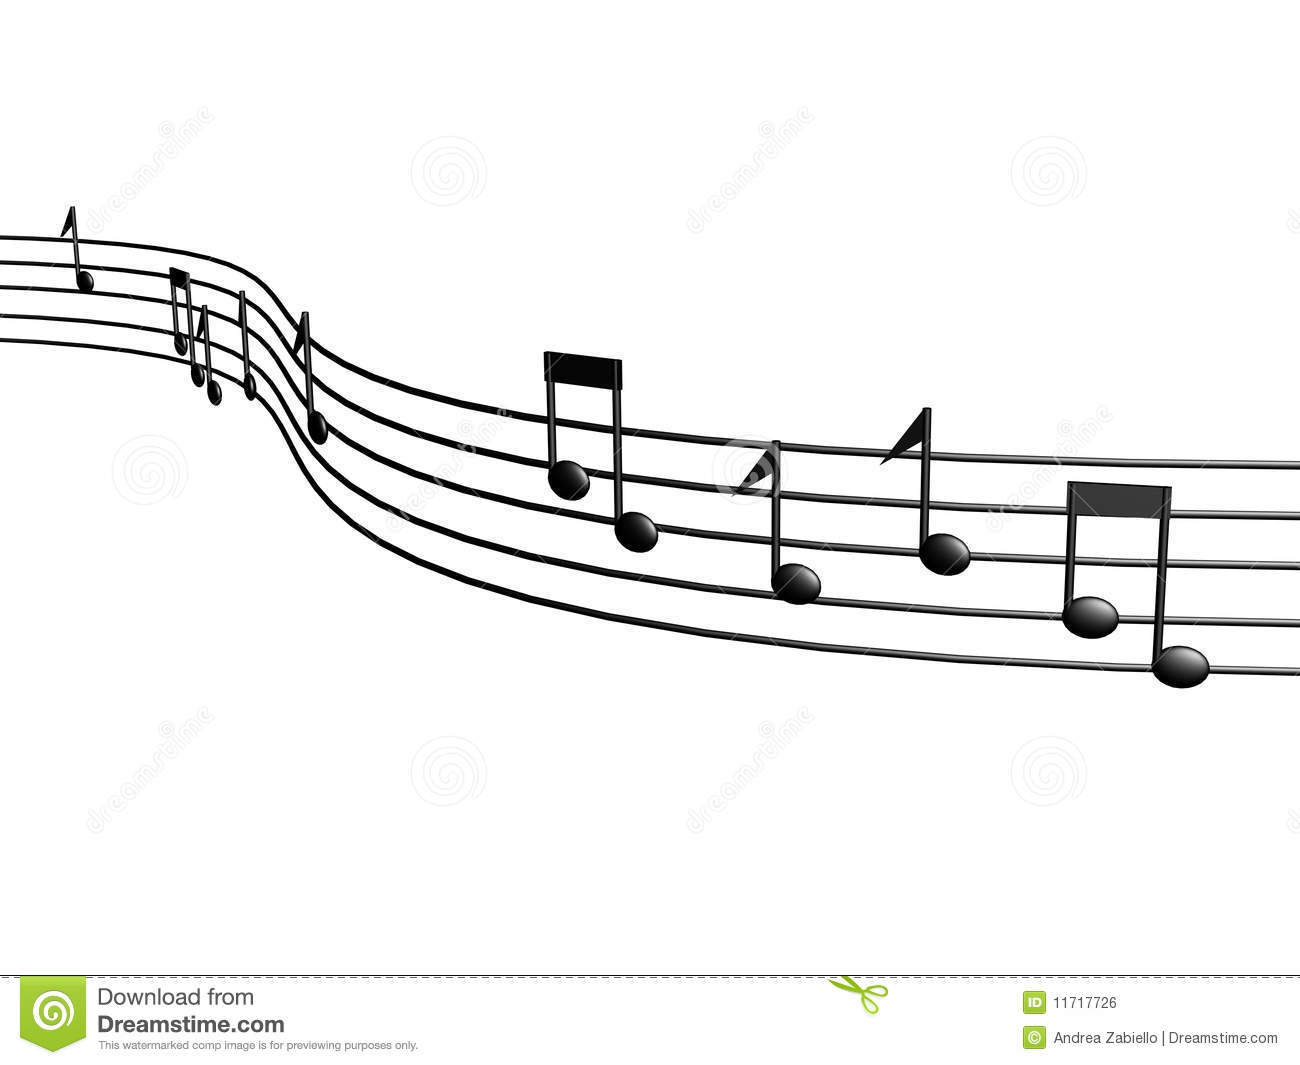 Royalty Free Stock Image 3d Music Score Notes Image11717726 likewise 9385 Ralph Lauren Logo Download also Royalty Free Stock Images Miscellaneous Icon Set Image9650239 also 609 Guerlain Logo Download likewise Graphic Design Icons. on travel vector graphics